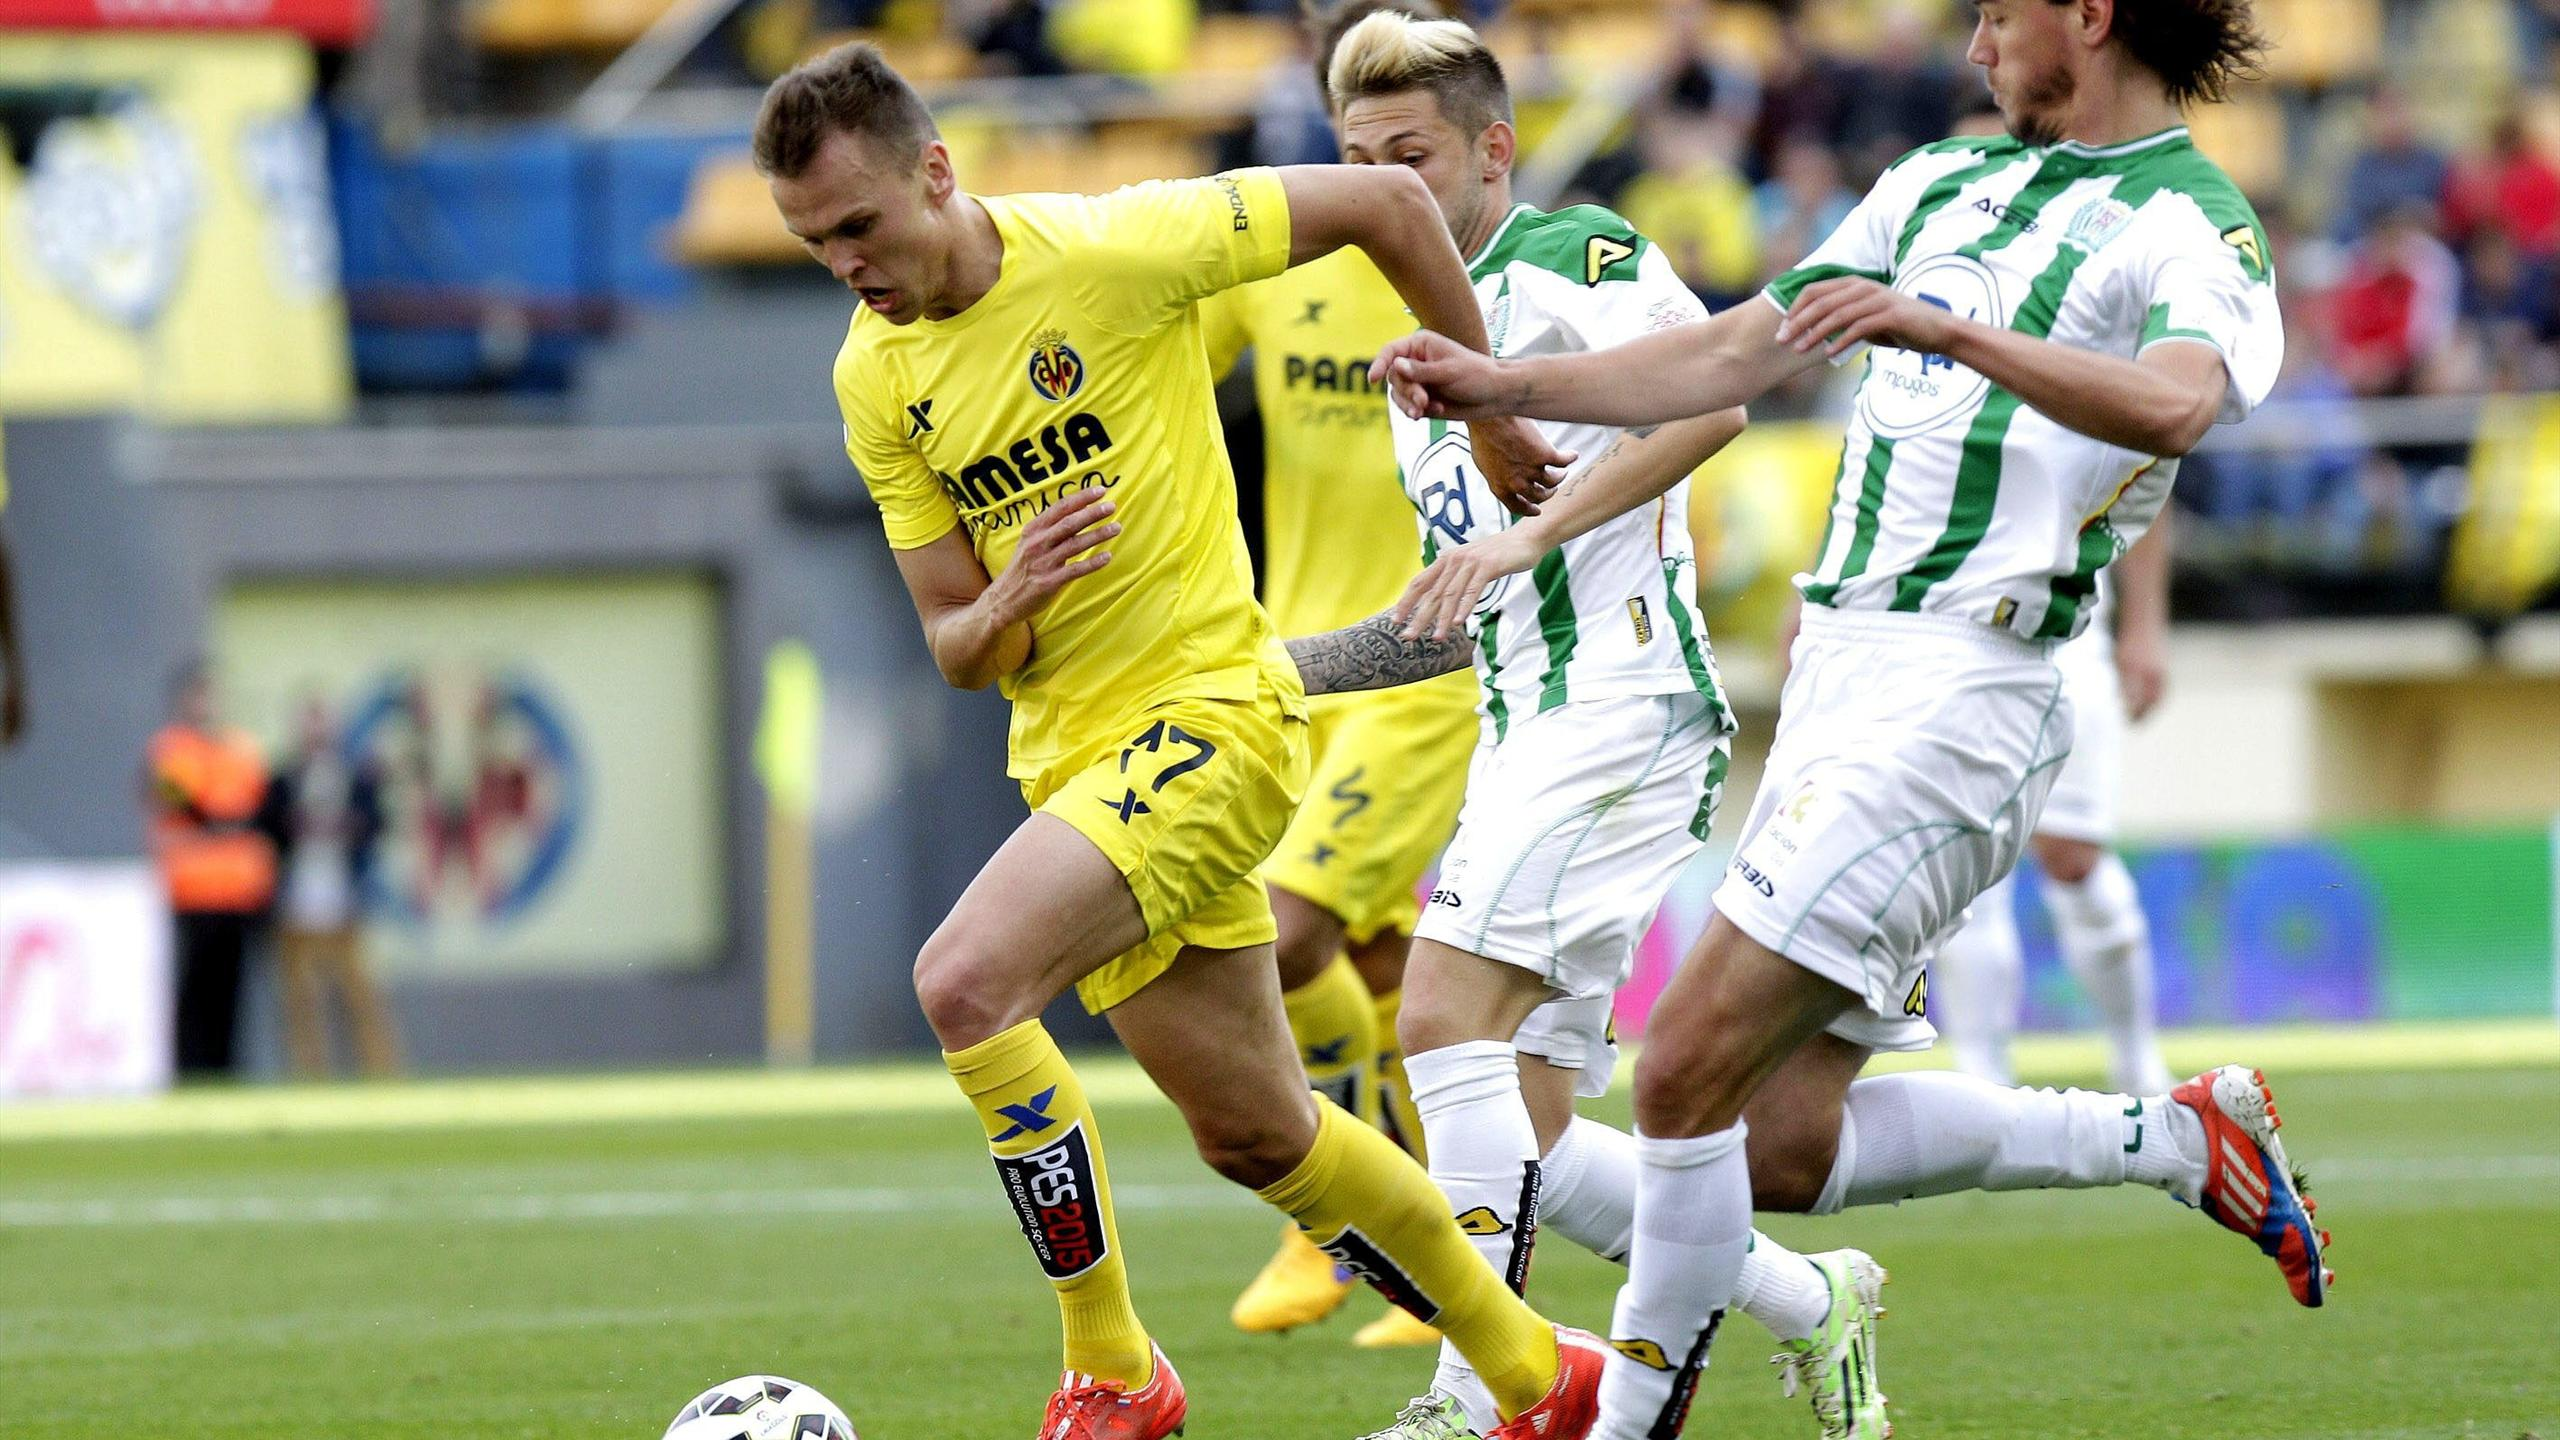 Video: Villarreal vs Cordoba